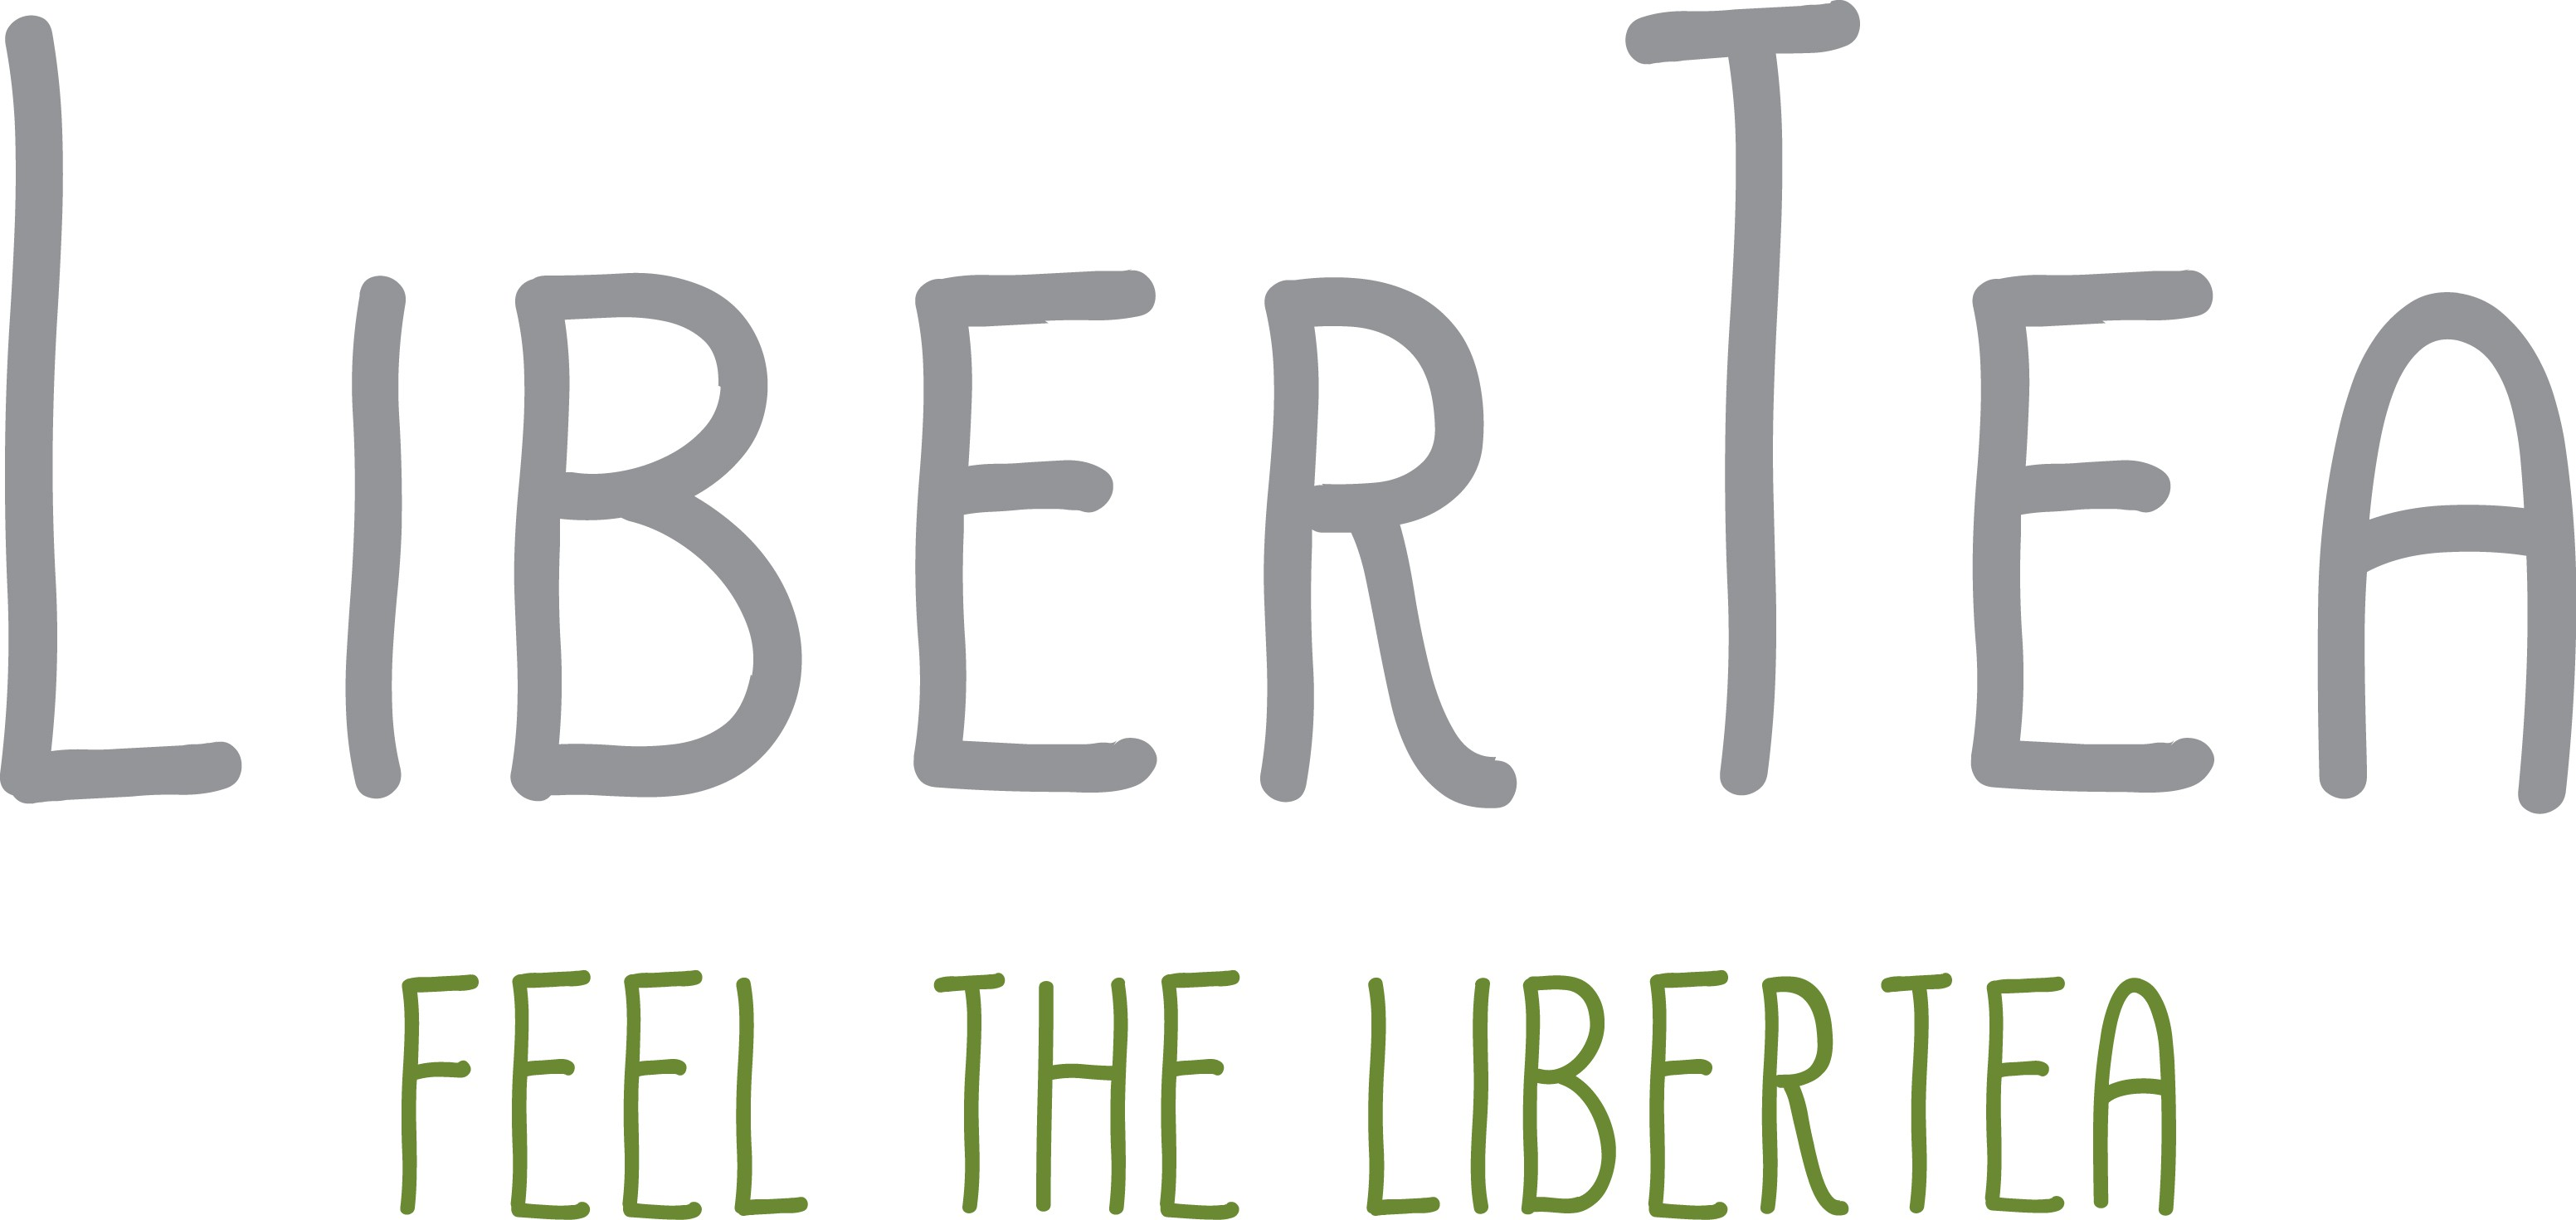 Feel the liberTea - Youth energetic Artistic tea shop -